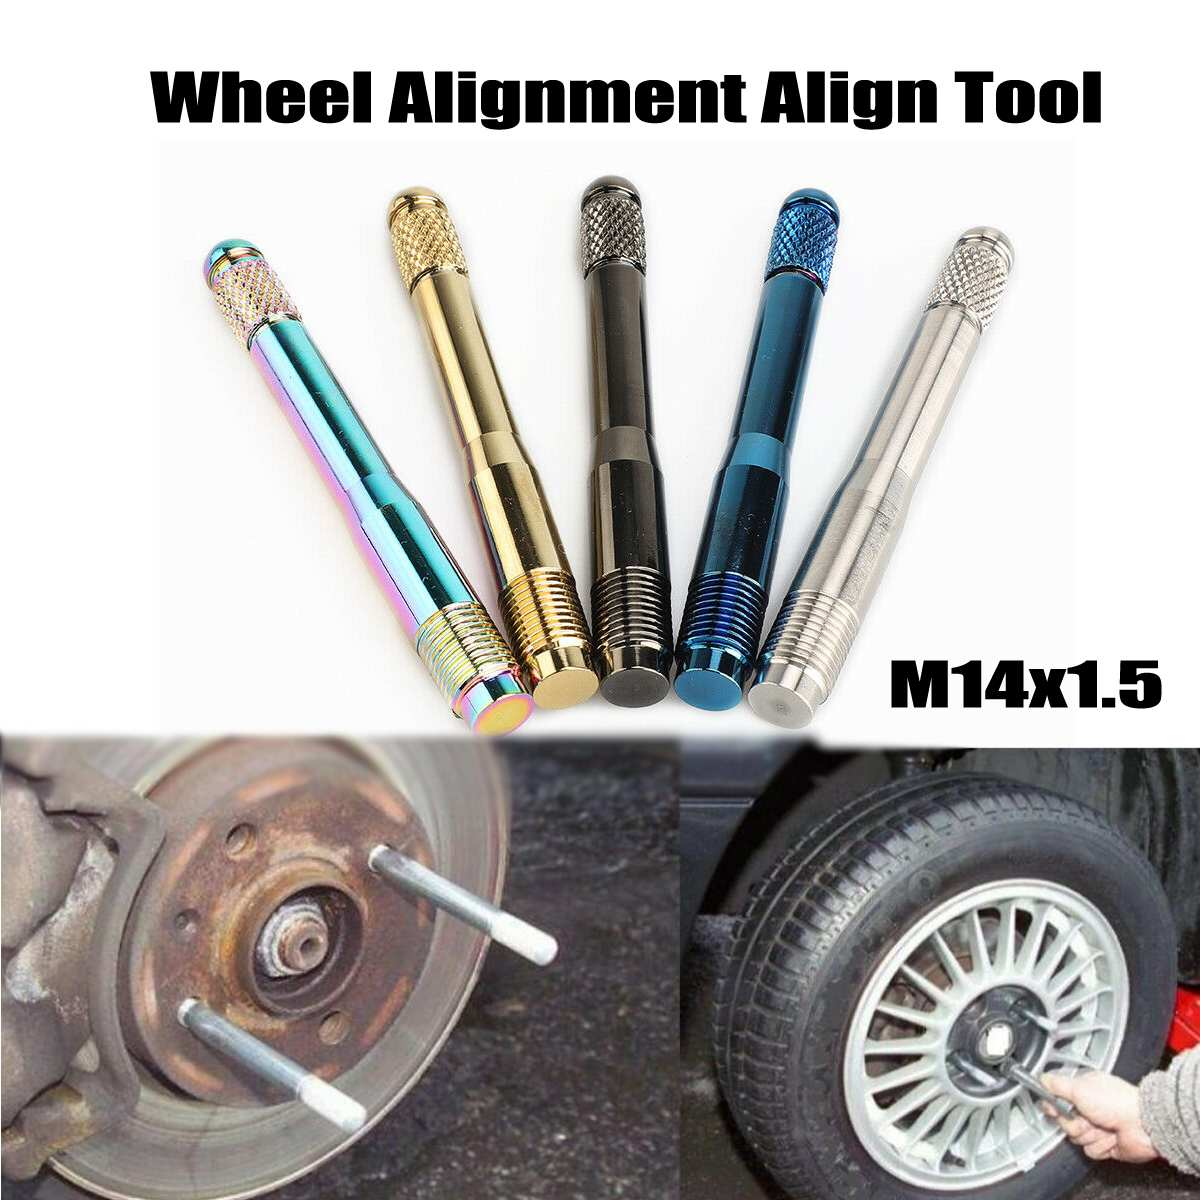 Universal Car Wheel Alignment Stainless Steel Align Tool Camber Castor Strut Tire Repair Tools Aligning Studs Positioning Tool